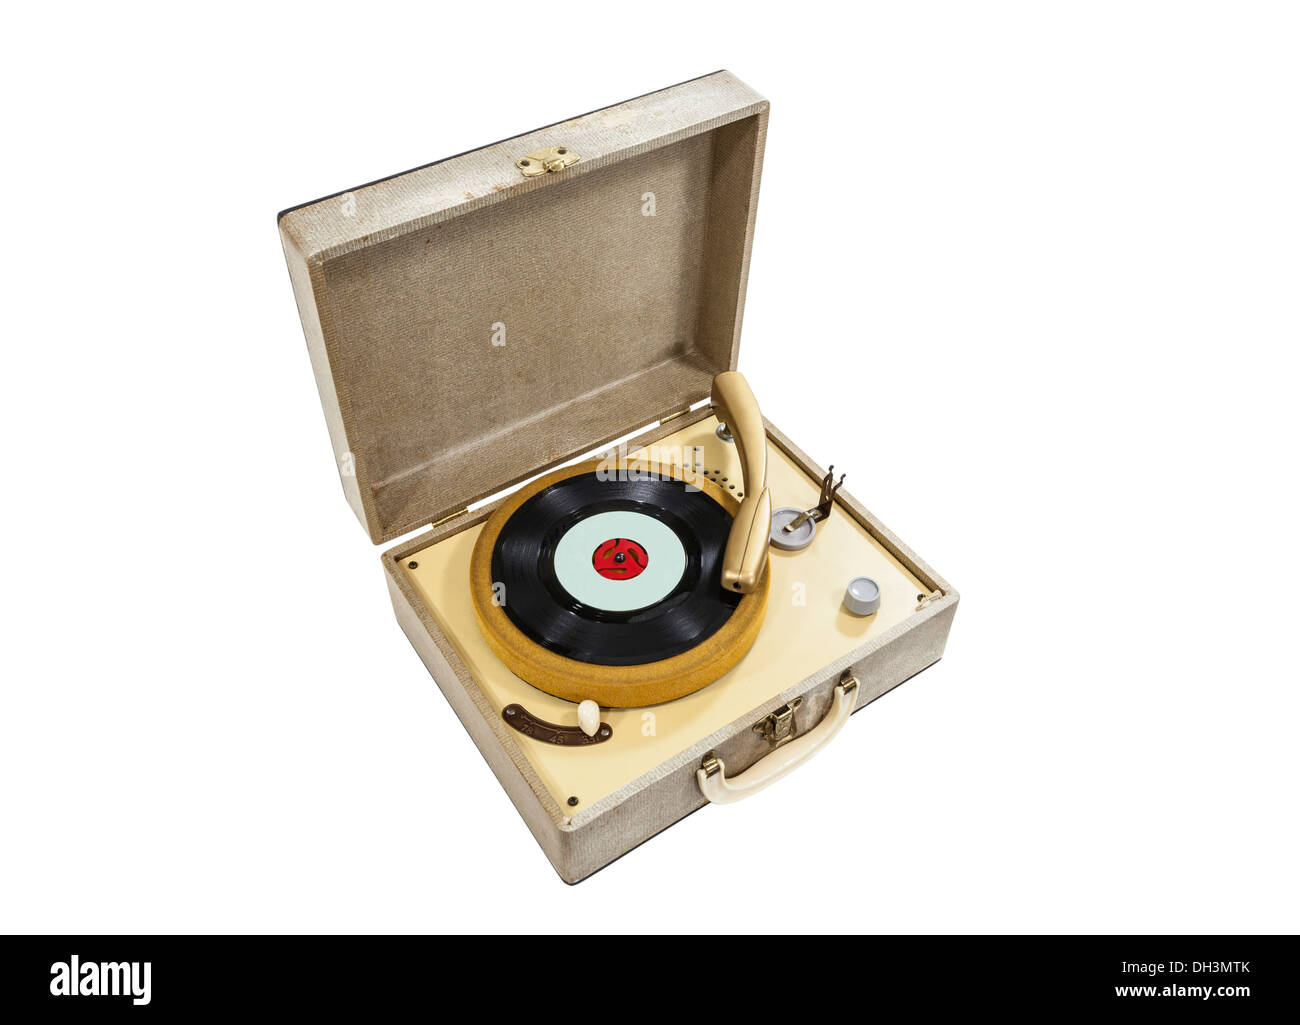 Grungy old record player isolated with clipping path. - Stock Image